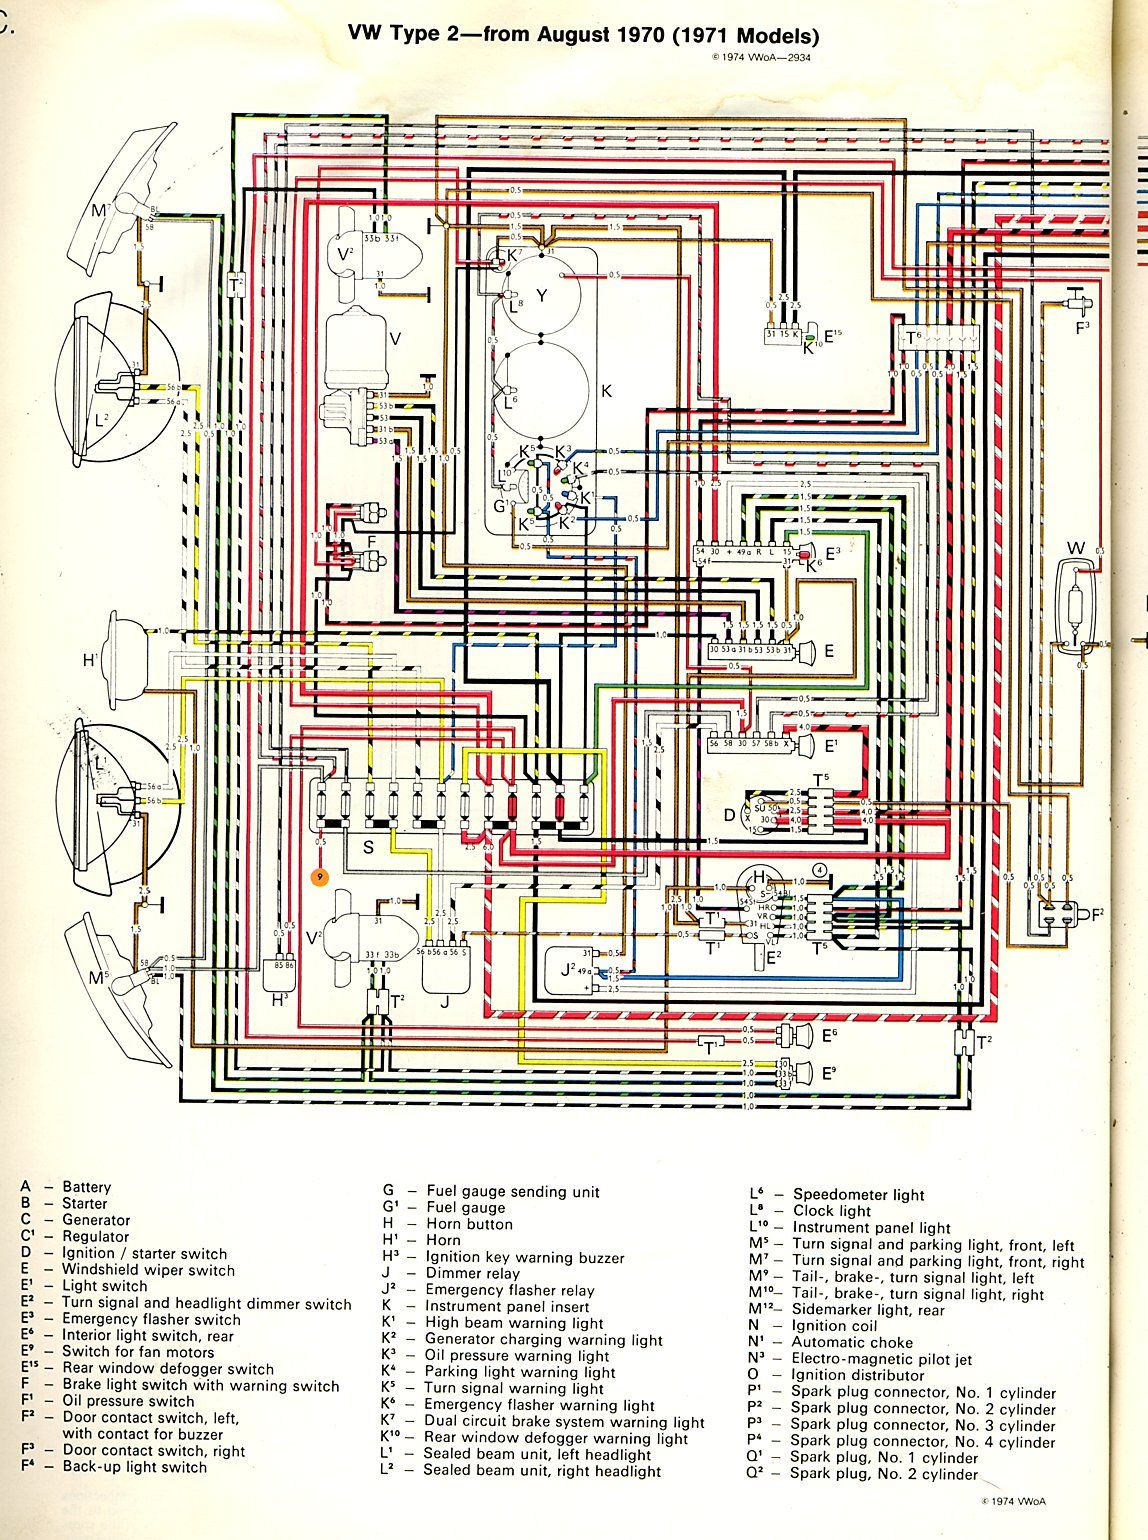 Vw Bus Diagram Archive Of Automotive Wiring 1977 Chrysler Cordoba 1971 Thegoldenbug Com Stuff To Try Rh Pinterest